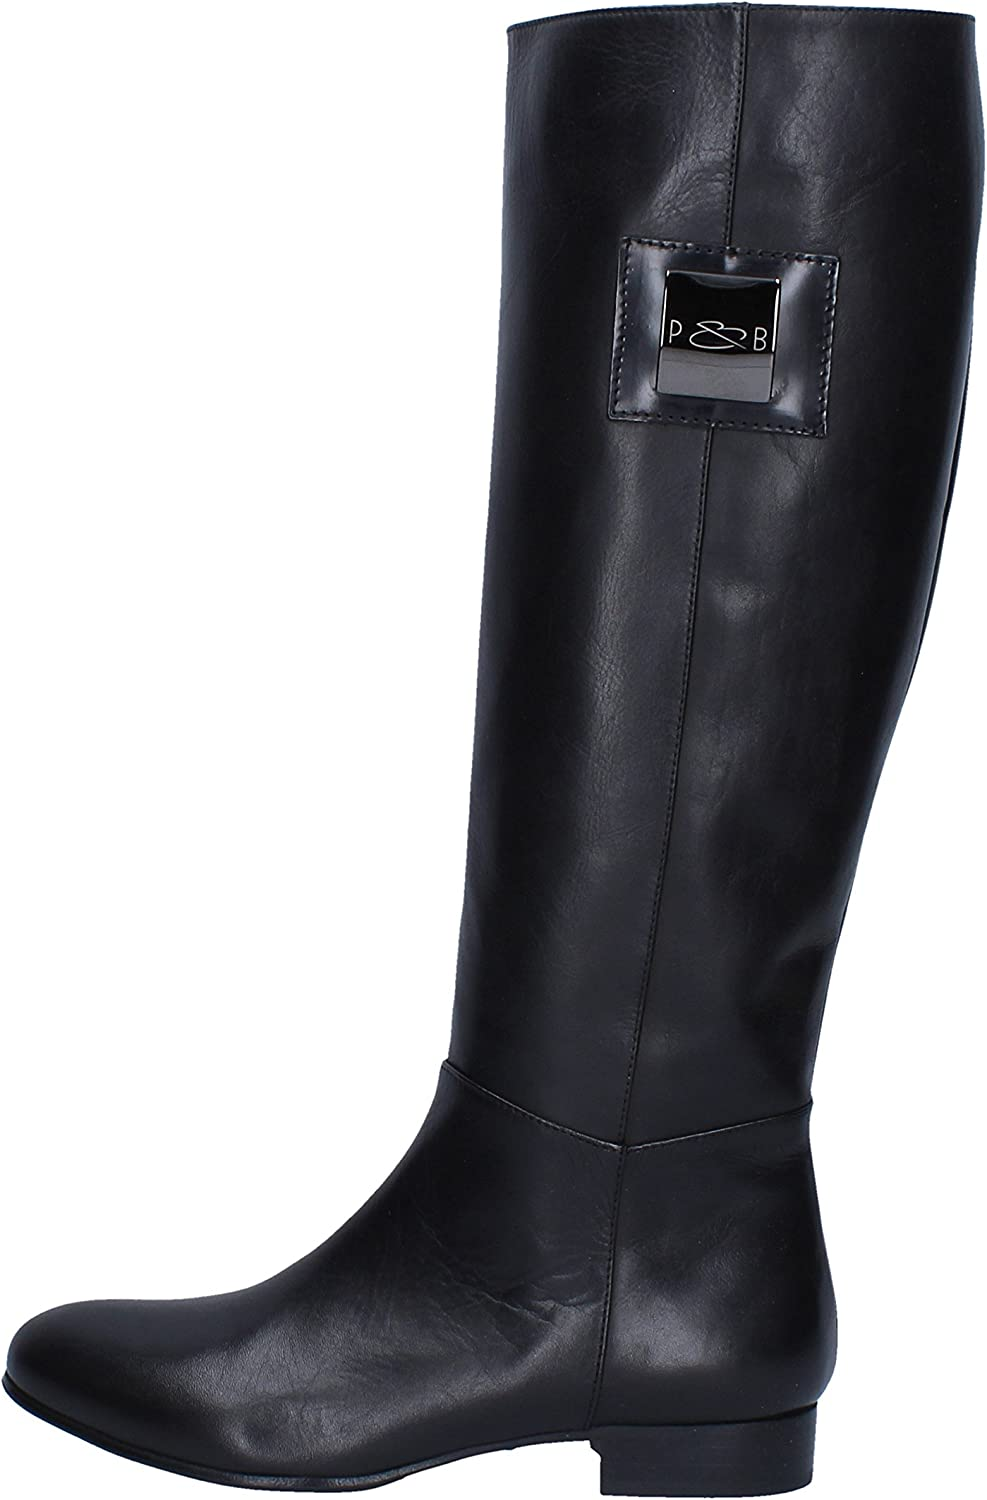 PAUL & BETTY Boots Womens Leather Black